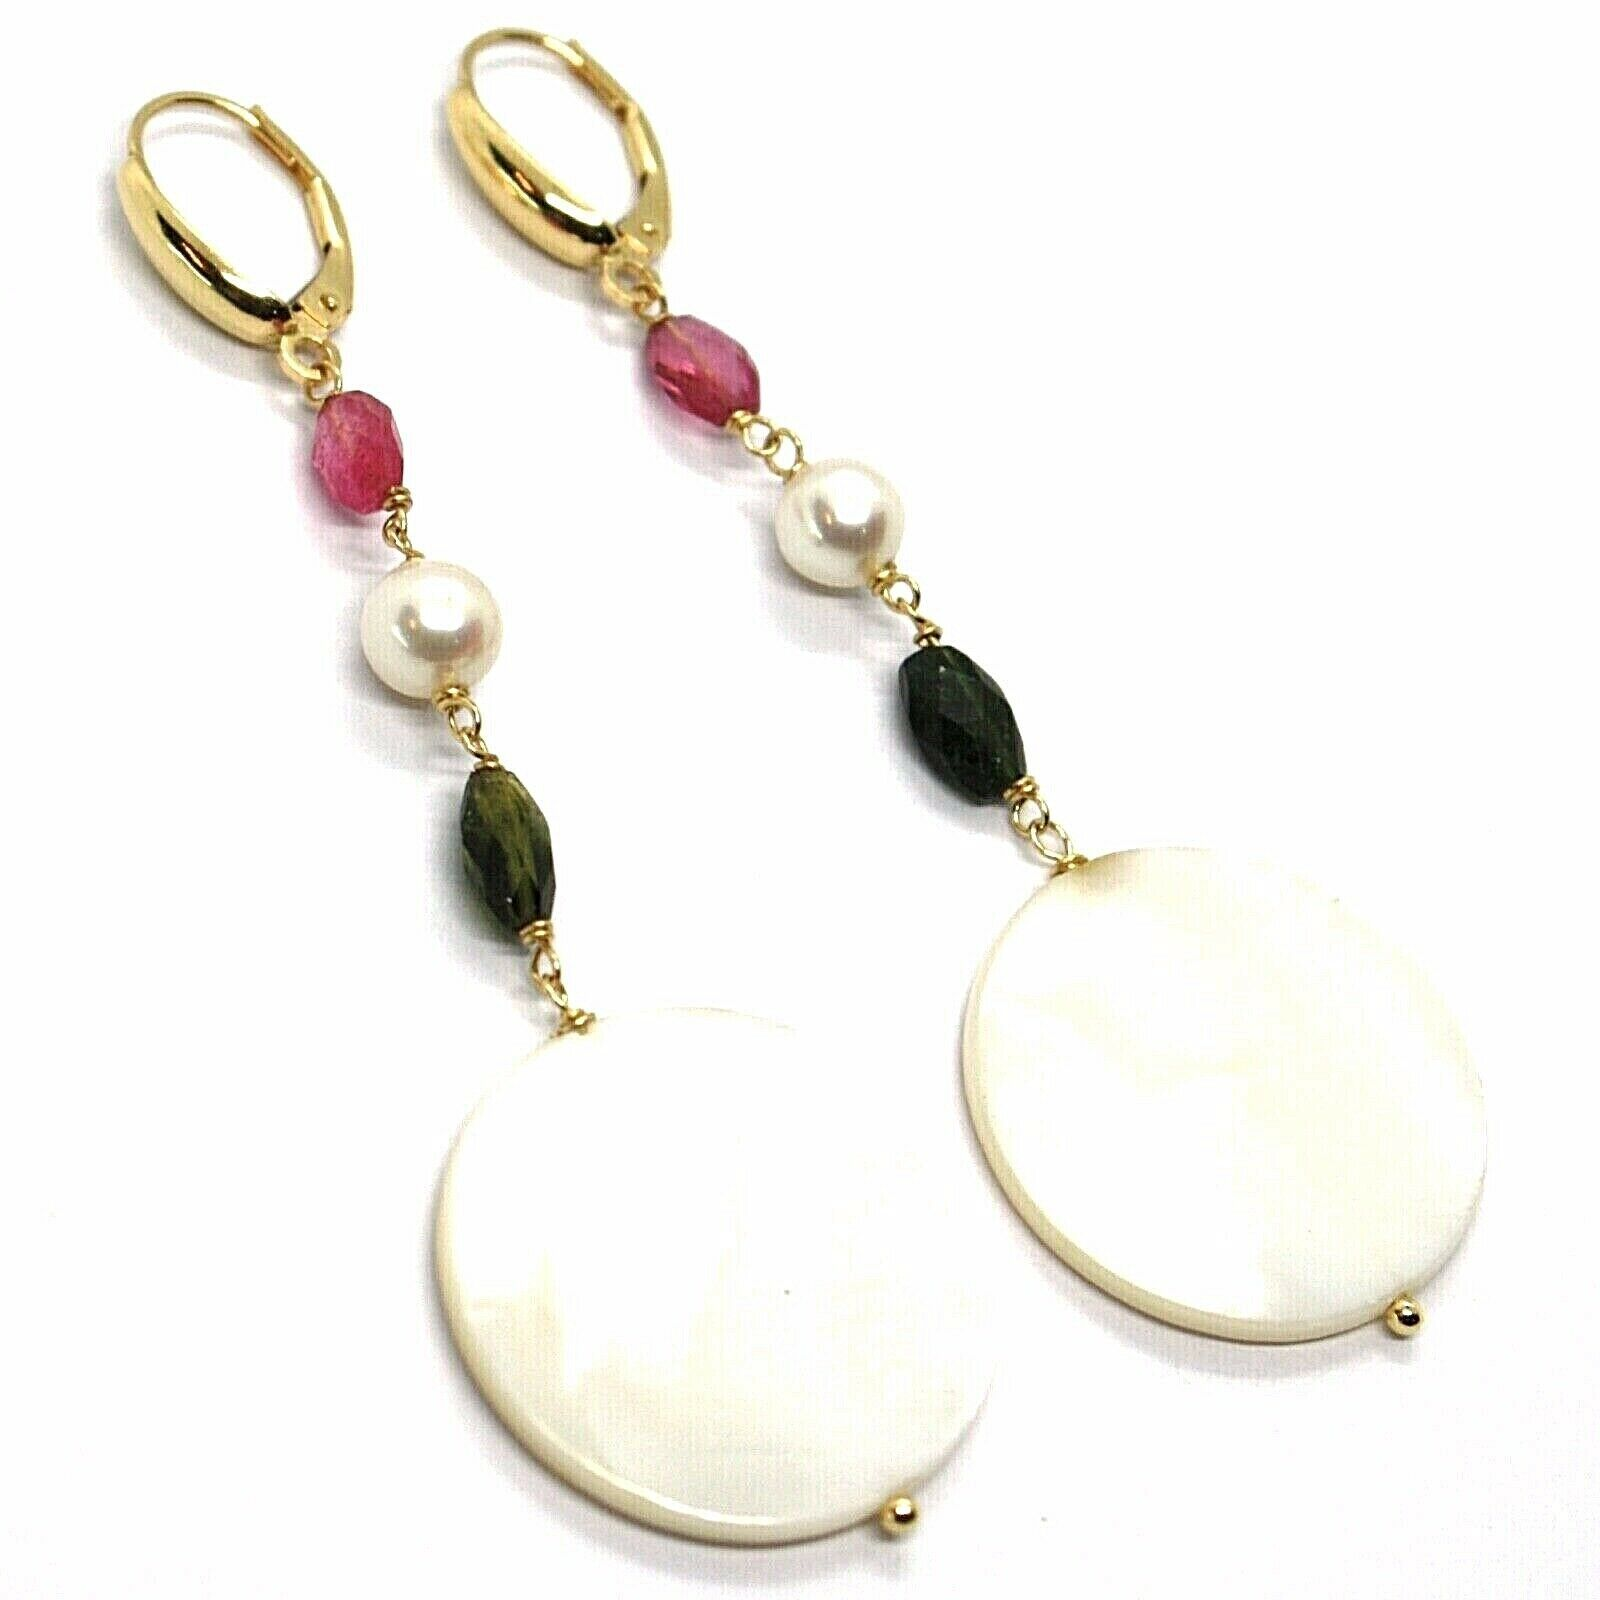 18K YELLOW GOLD PENDANT EARRINGS, MOTHER OF PEARL DISC, GREEN RED TOURMALINE